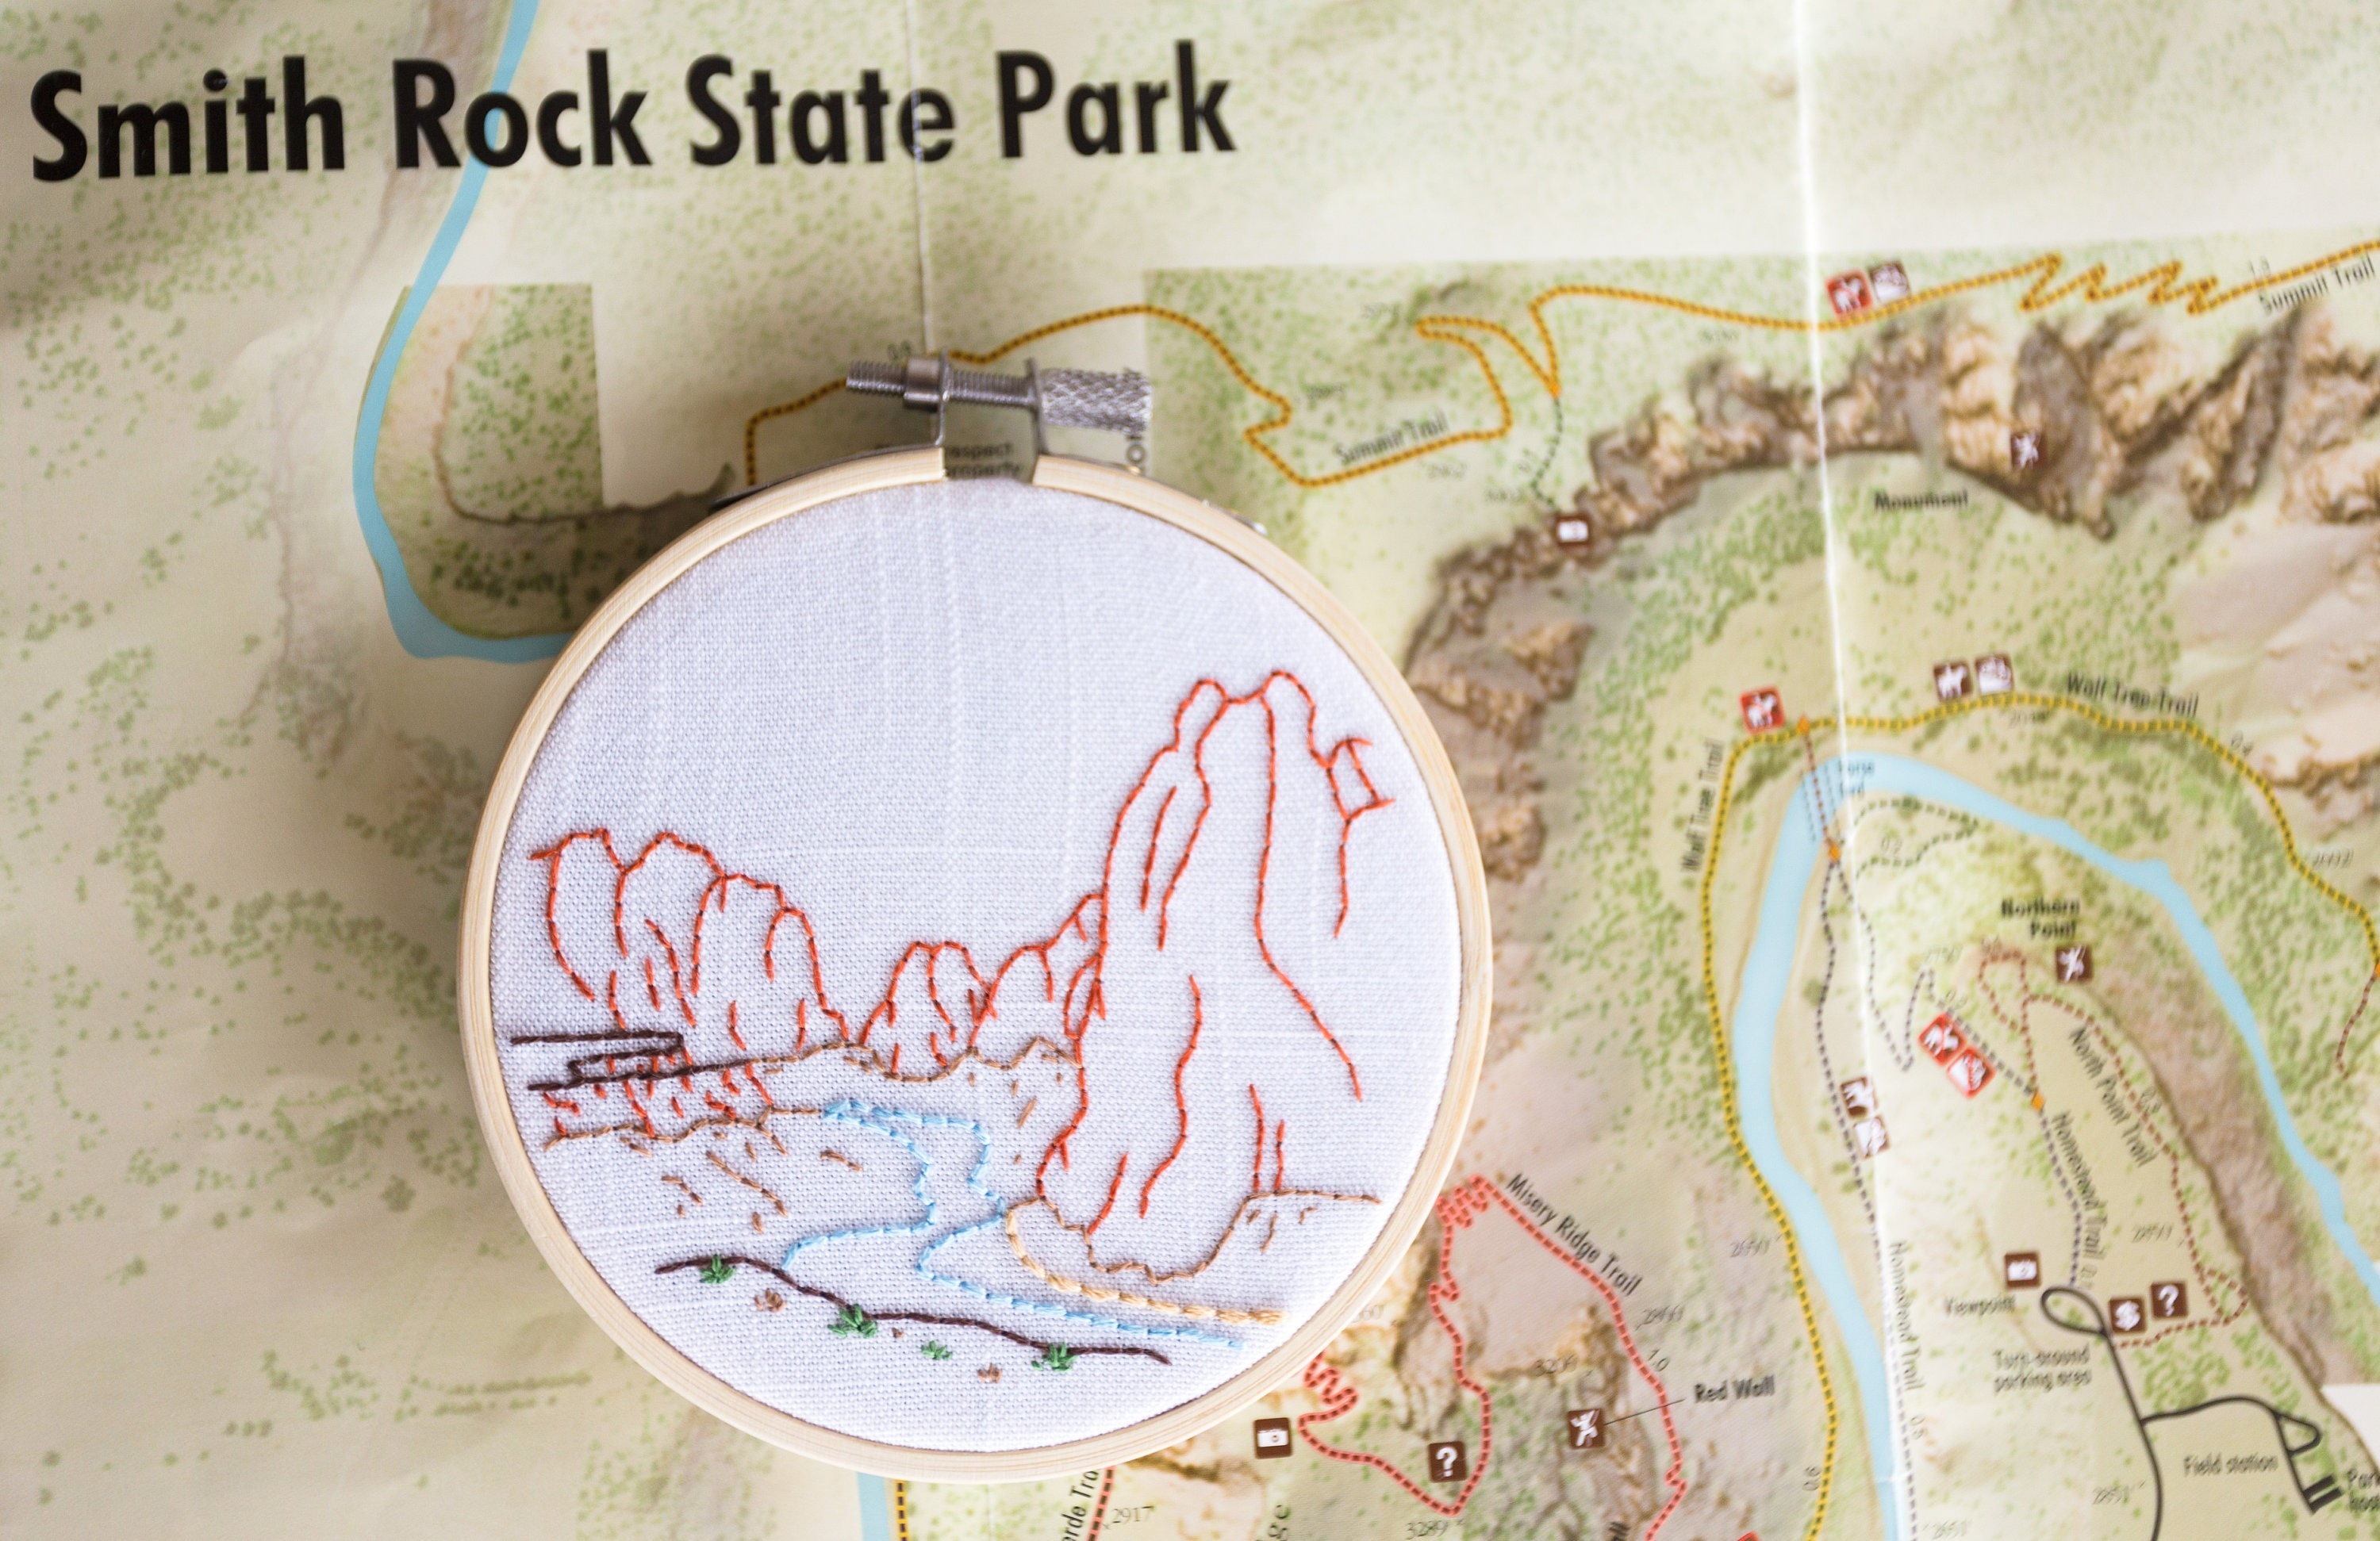 Hand Embroidered Hoop Art: Smith Rock on smith rock climbing routes, smith rock misery ridge trail, smith rock route map, smith rock road map, smith rock oregon, smith rock lodging, smith rock state park trails, smith rock climbing map, smith rock state park location, smith rock or, smith rock state park campground, smith rock welcome, smith rock park map, smith rock from a distance, crater of diamonds state park map, smith rock history, smith rock directions, smith rock brewing redmond, smith rock hiking guide, smith rock portland,